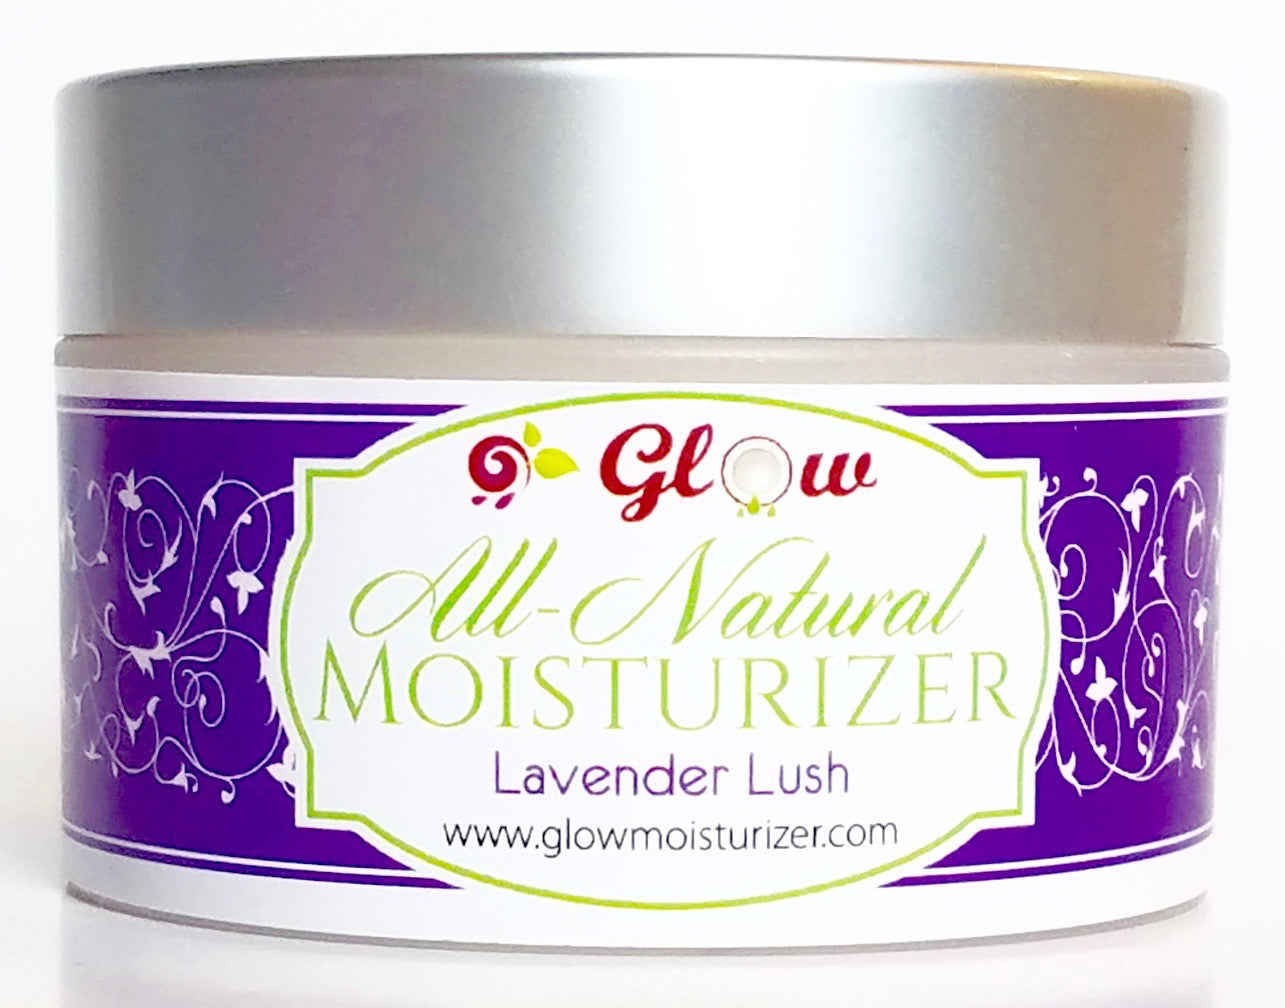 moisturizer for face skin care for men skin care for women moisturizer diy